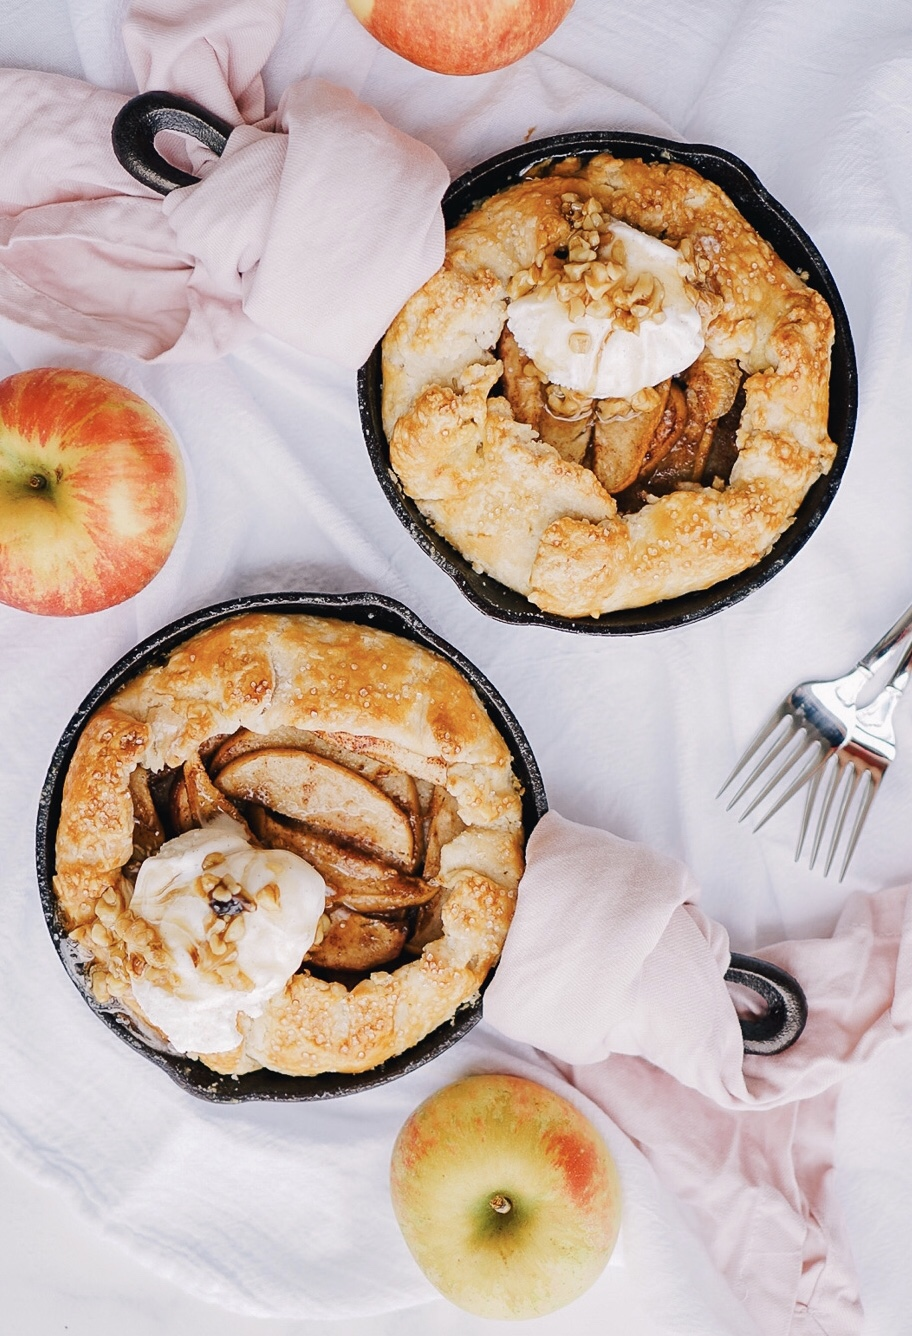 A quick and easy skillet apple pie recipe from Lauren Cermak of the Southern Lifestyle Blog, Going For Grace. This recipe is the perfect addition this Fall!